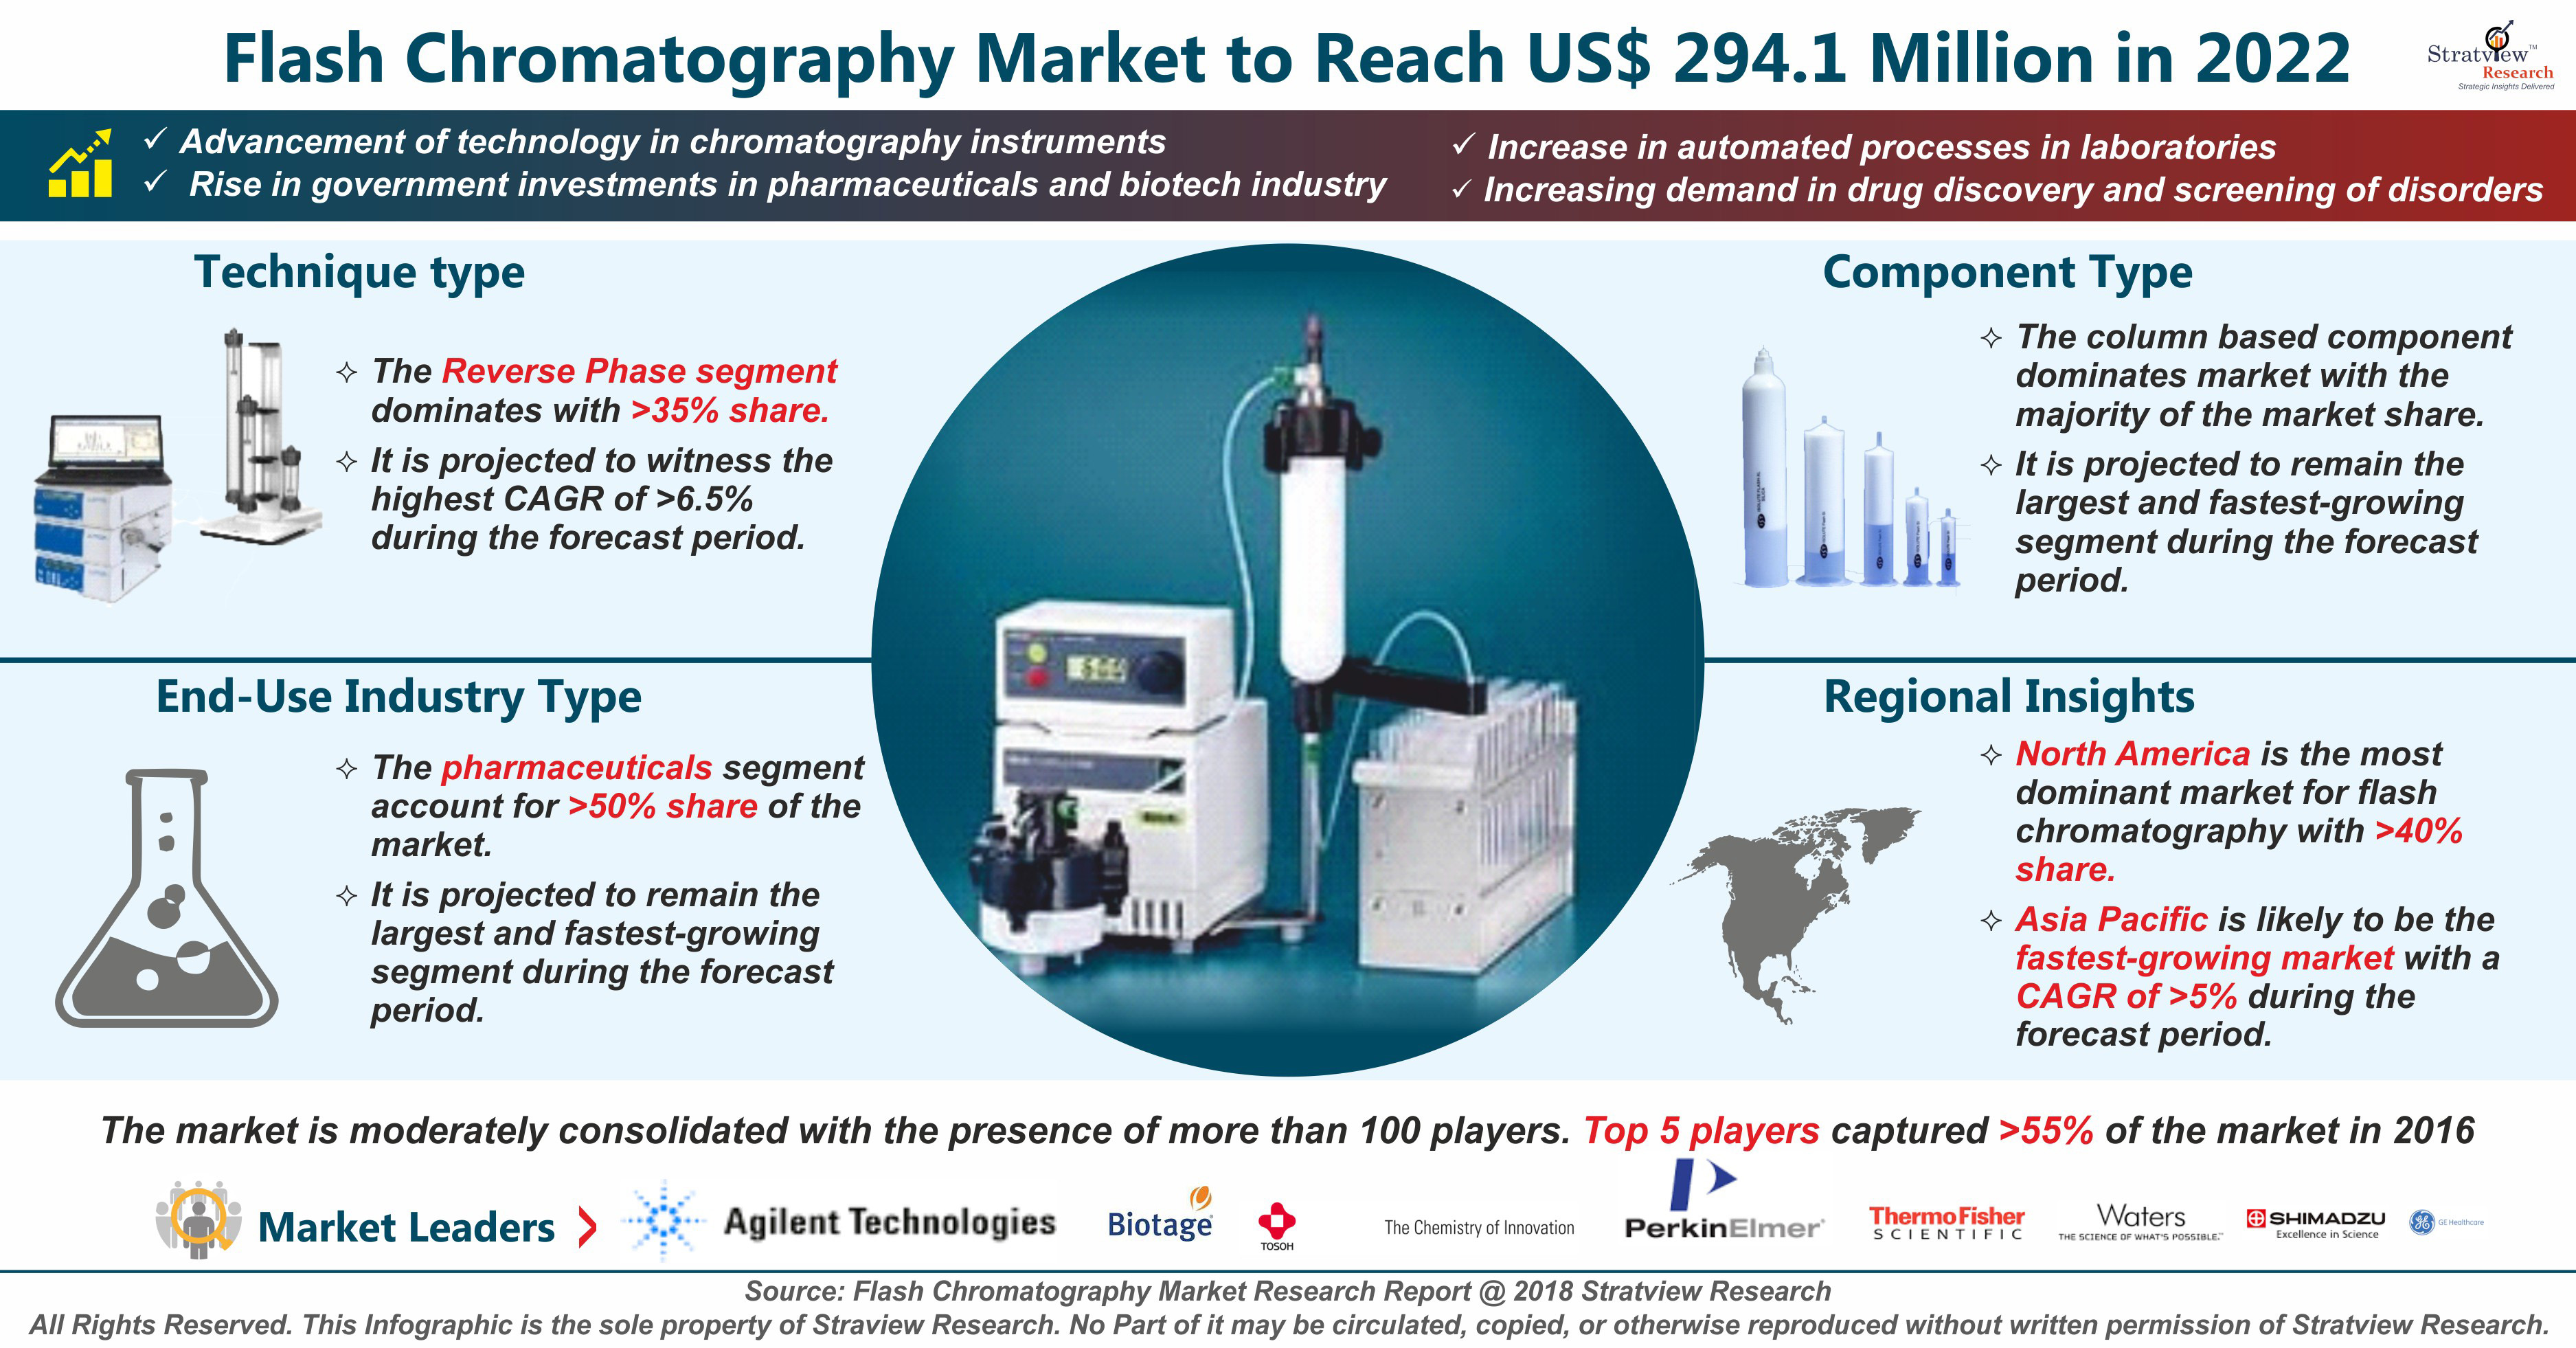 Flash Chromatography Market Analysis